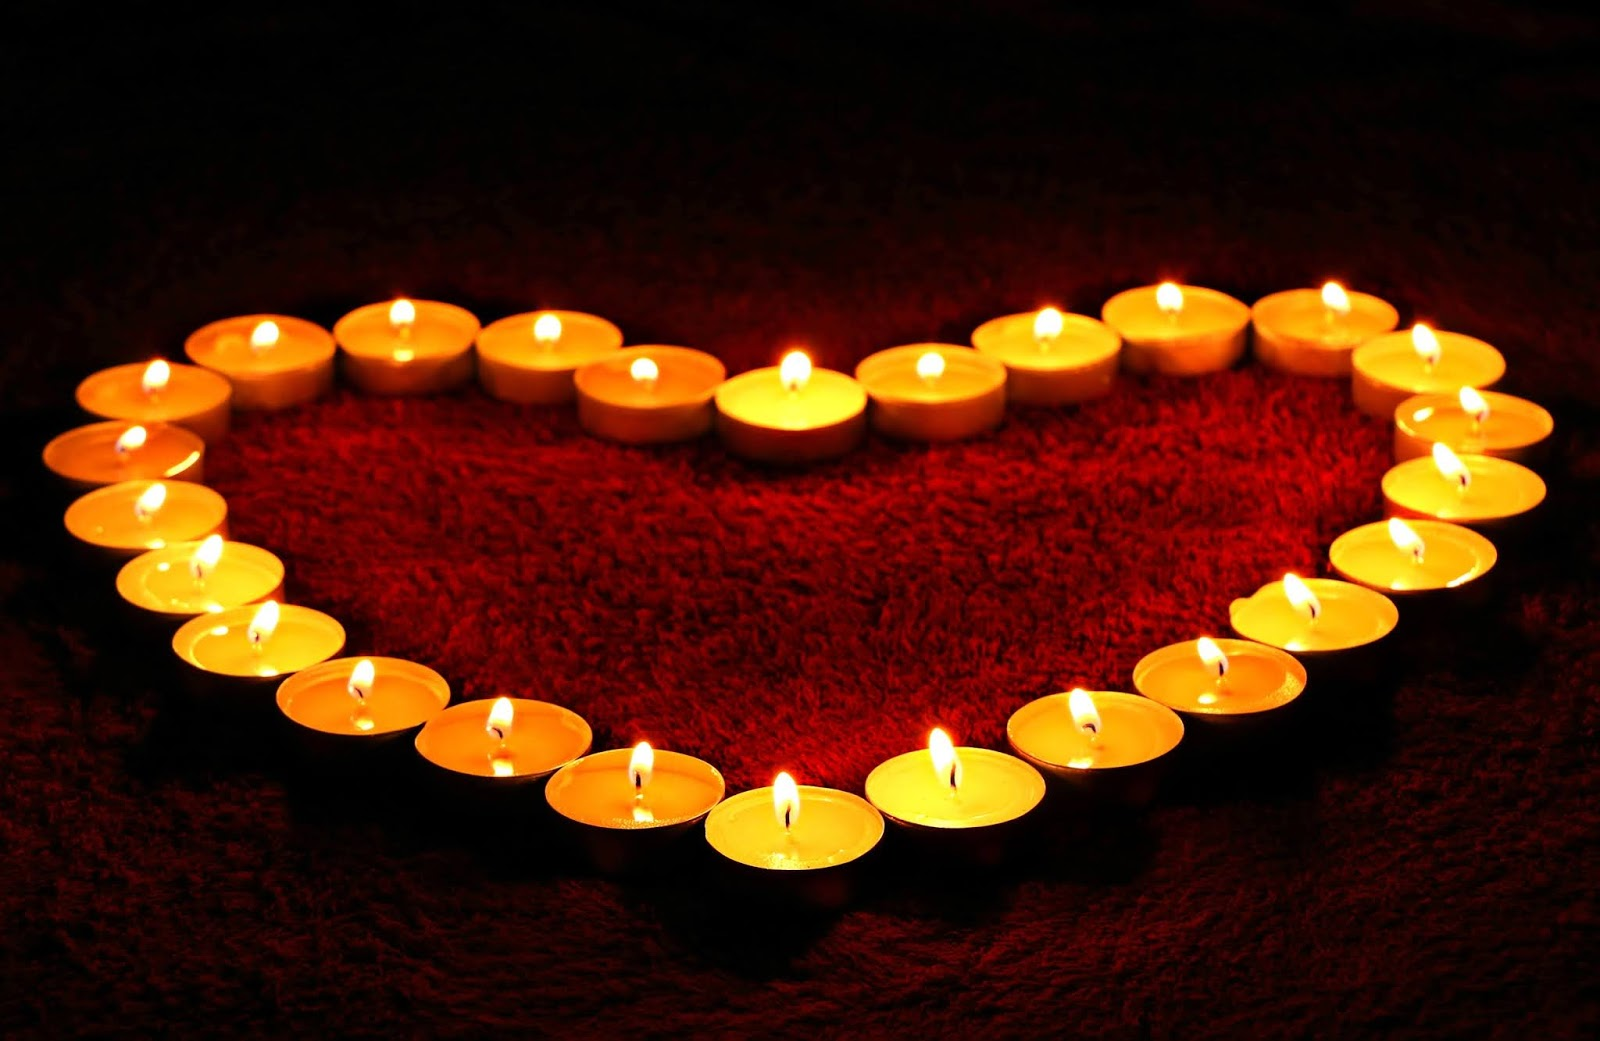 heart shaped candle images